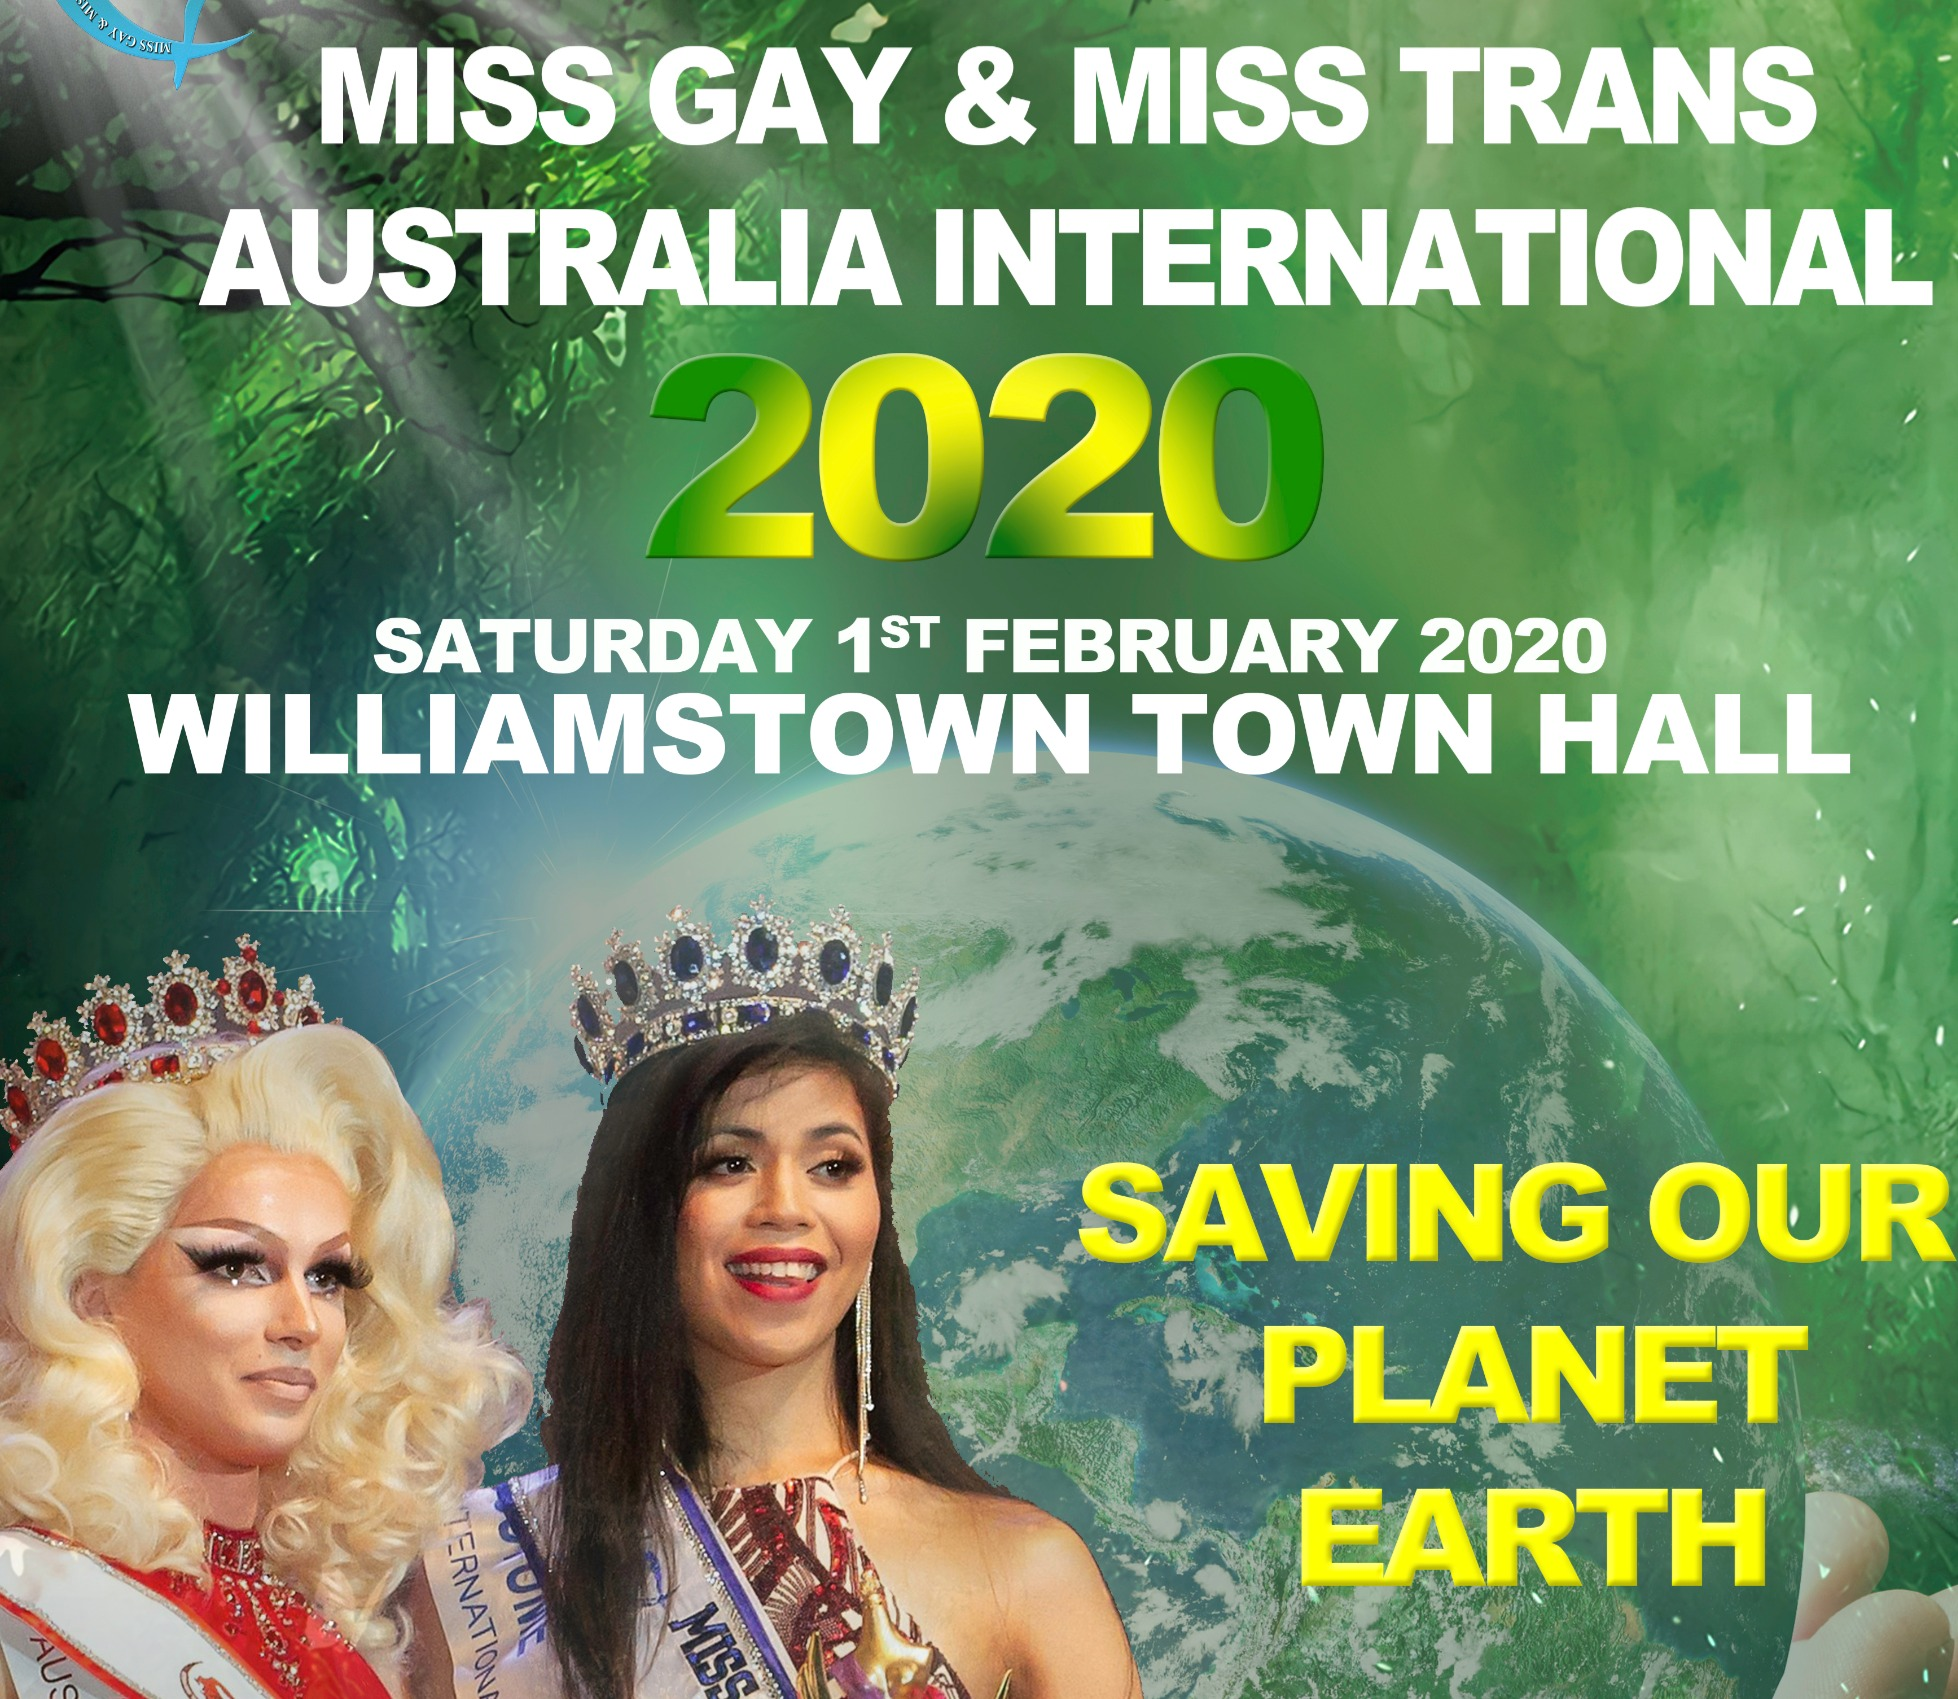 Miss gay and miss transsexual australia application